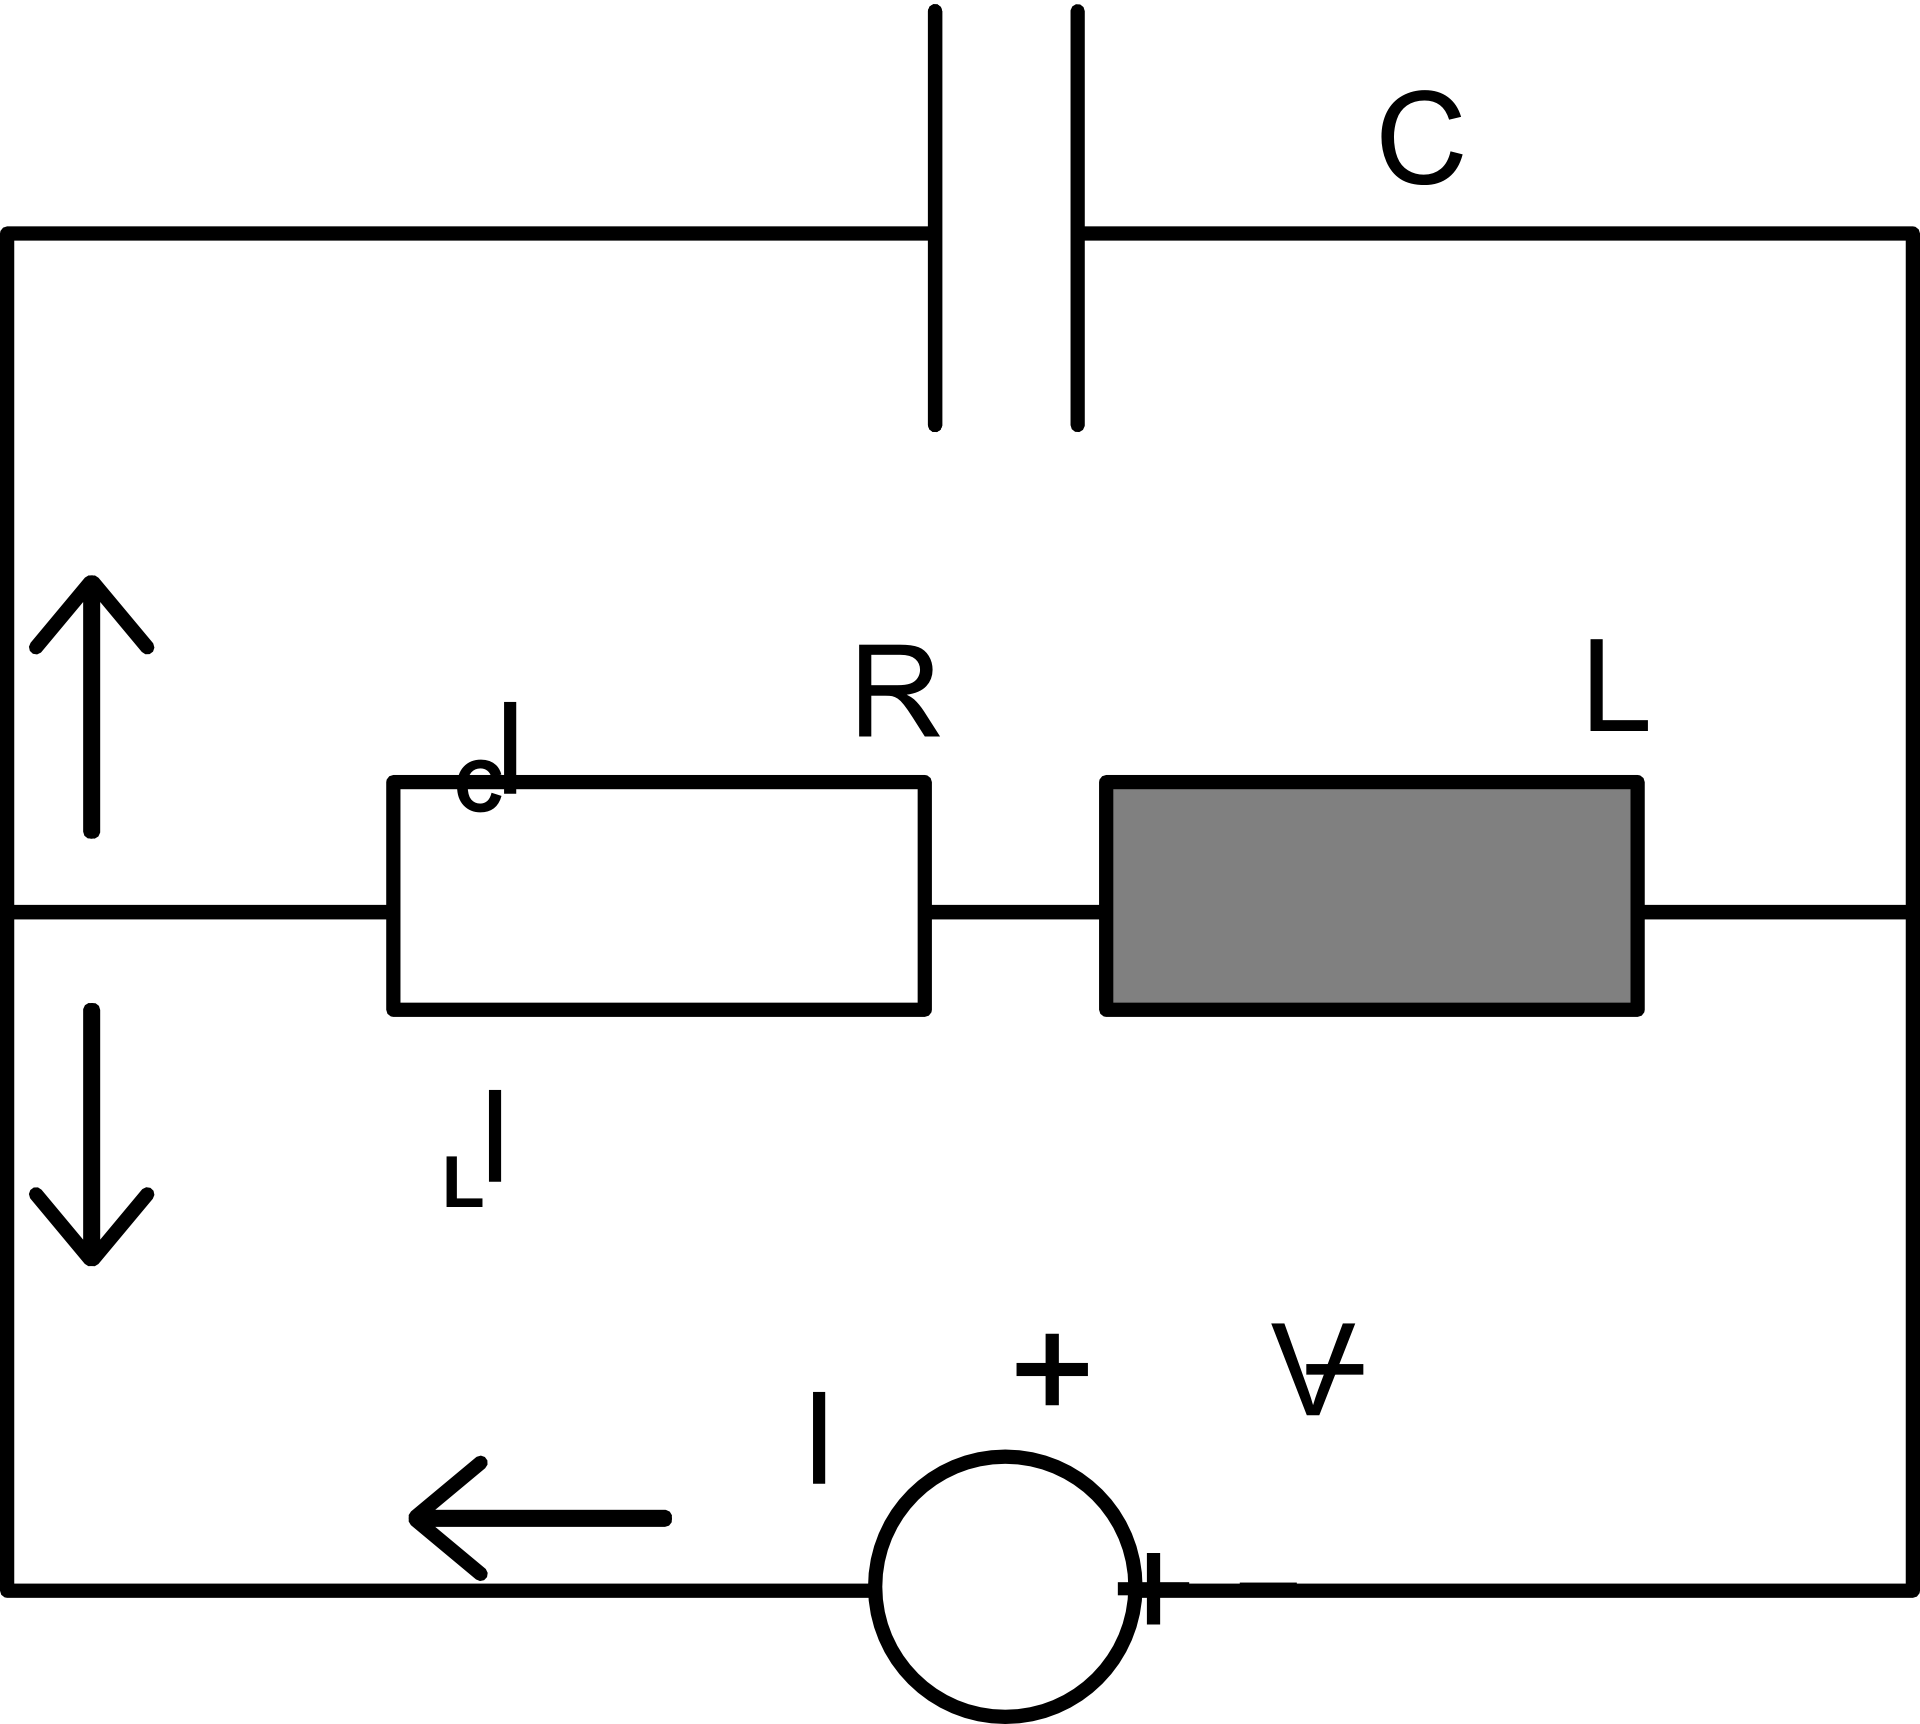 Complete Set Of Vector Electronic Circuit Symbols And Resistor Codes